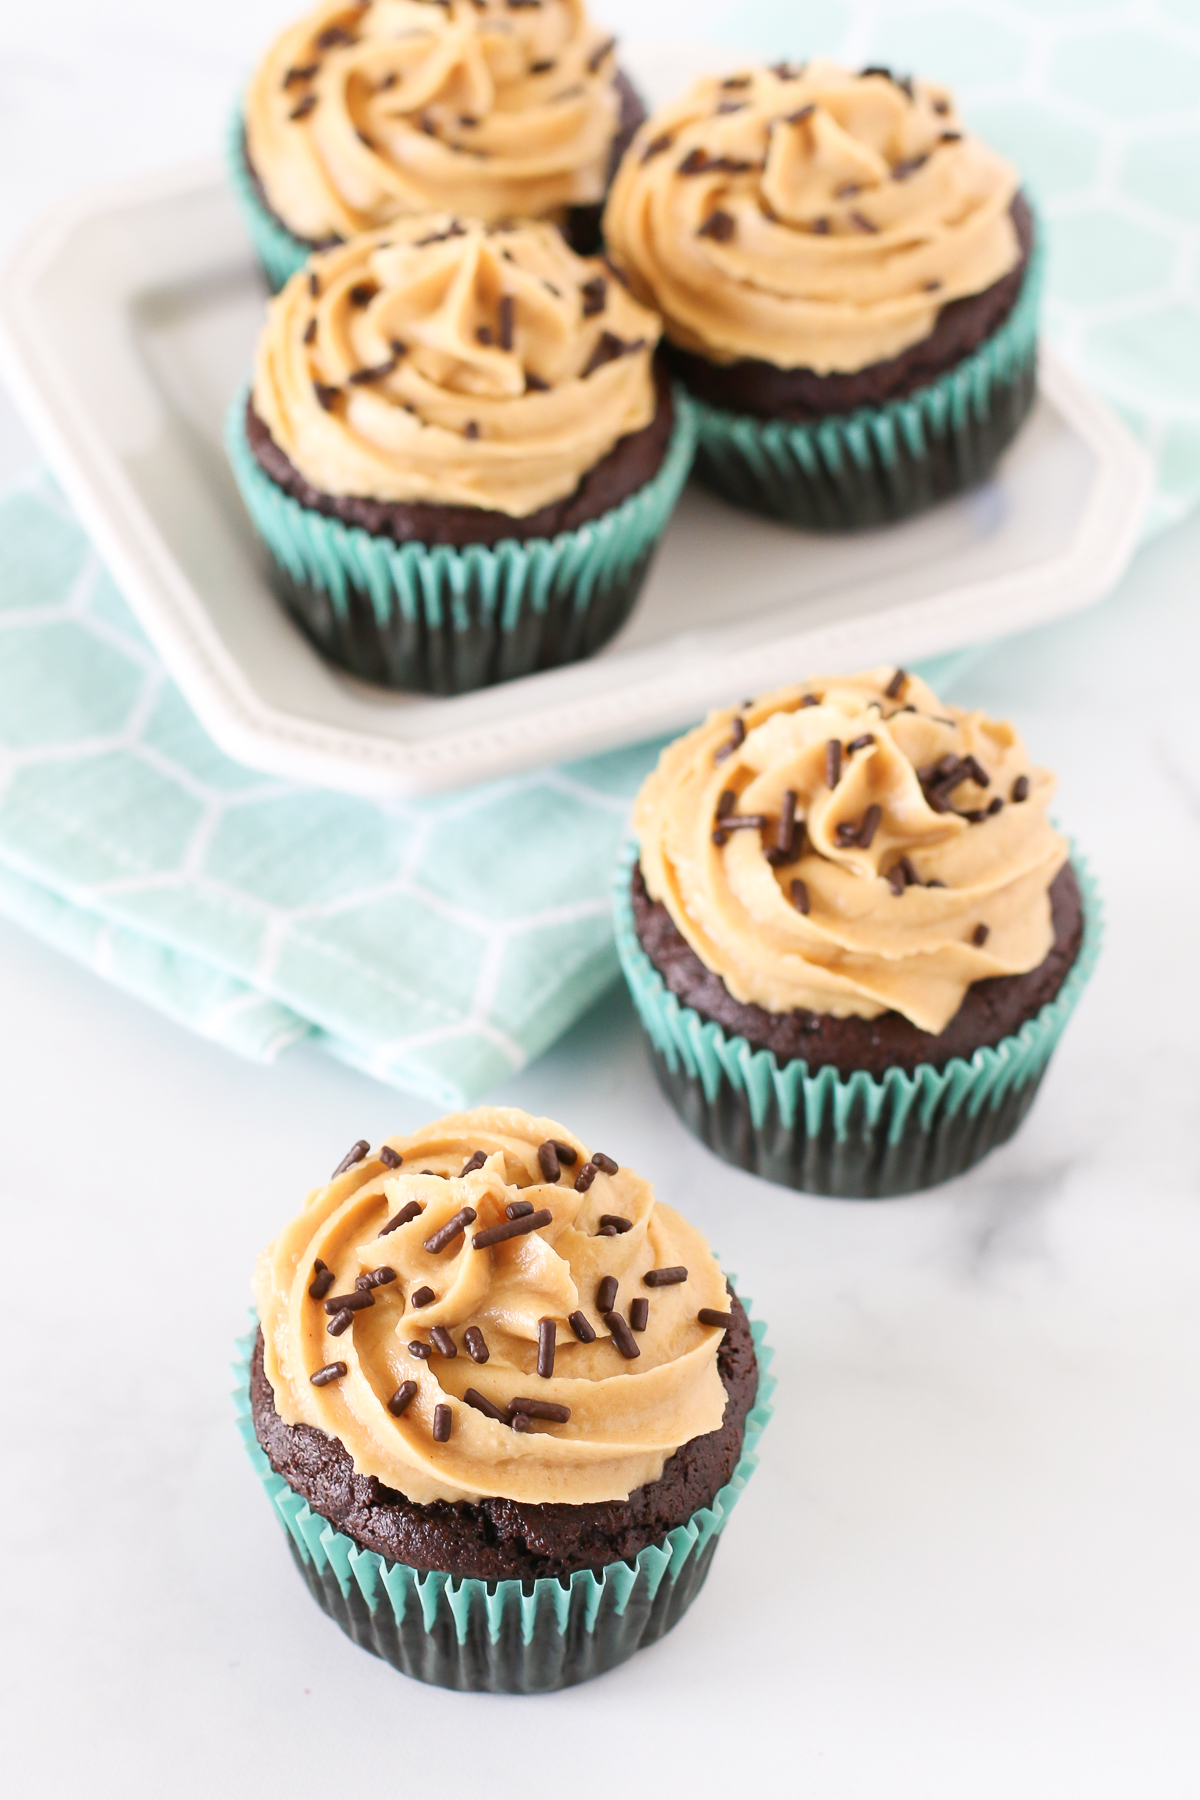 Gluten Free Vegan Chocolate Peanut Butter Cupcakes. Fluffy chocolate cupcakes with a creamy peanut butter frosting. A PB and chocolate lovers dream!